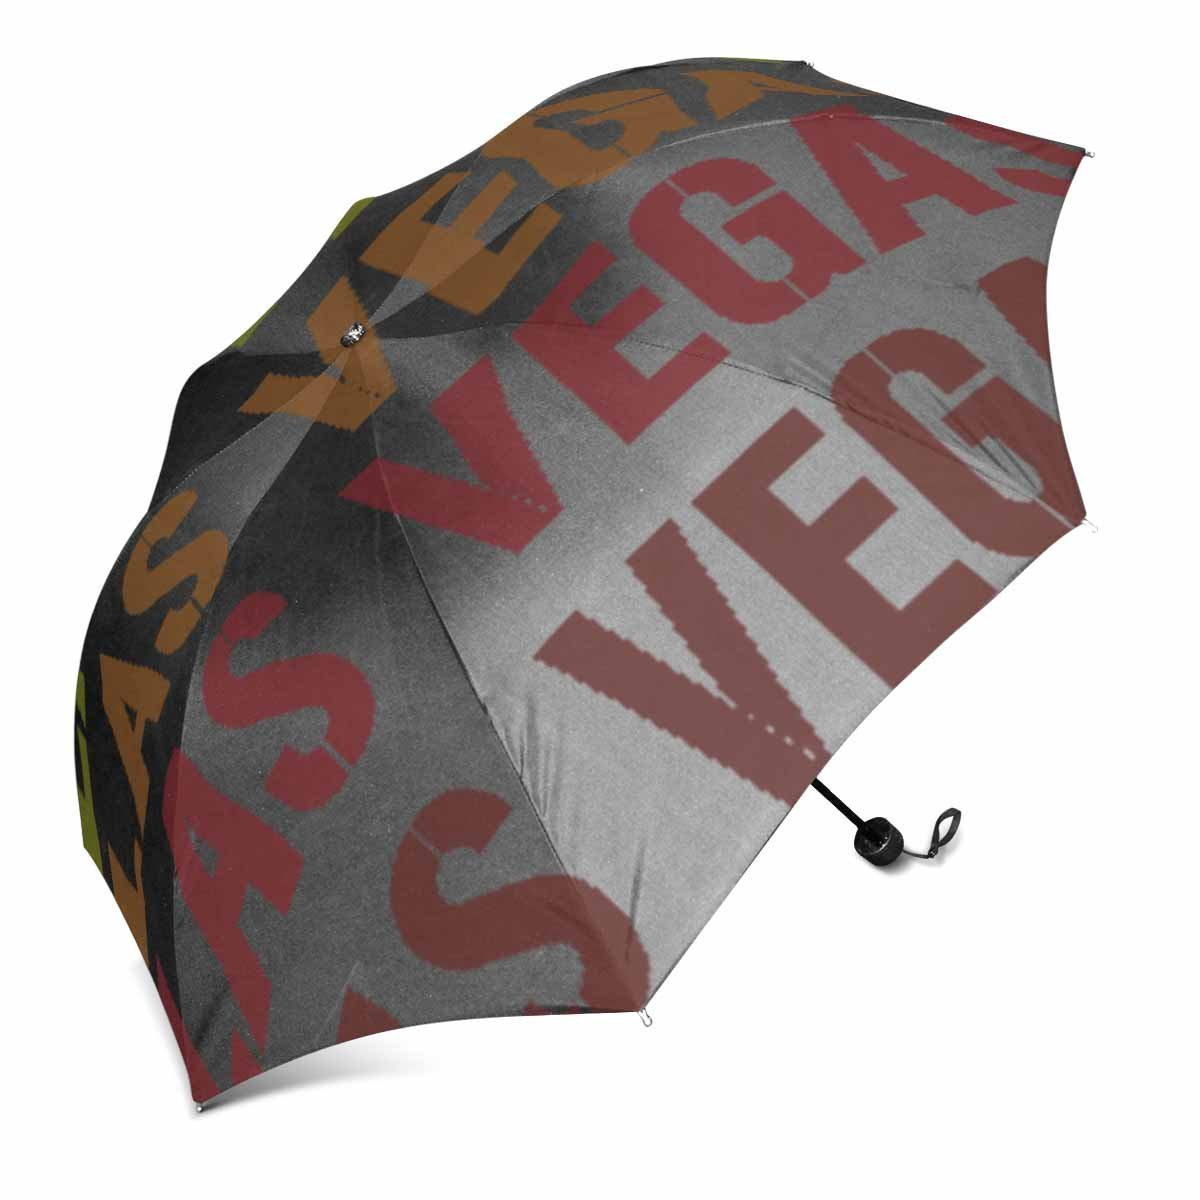 Ngjainxfac Folding Umbrella Windproof Sturdy and Portable,37.4 inch x 11.42 inch